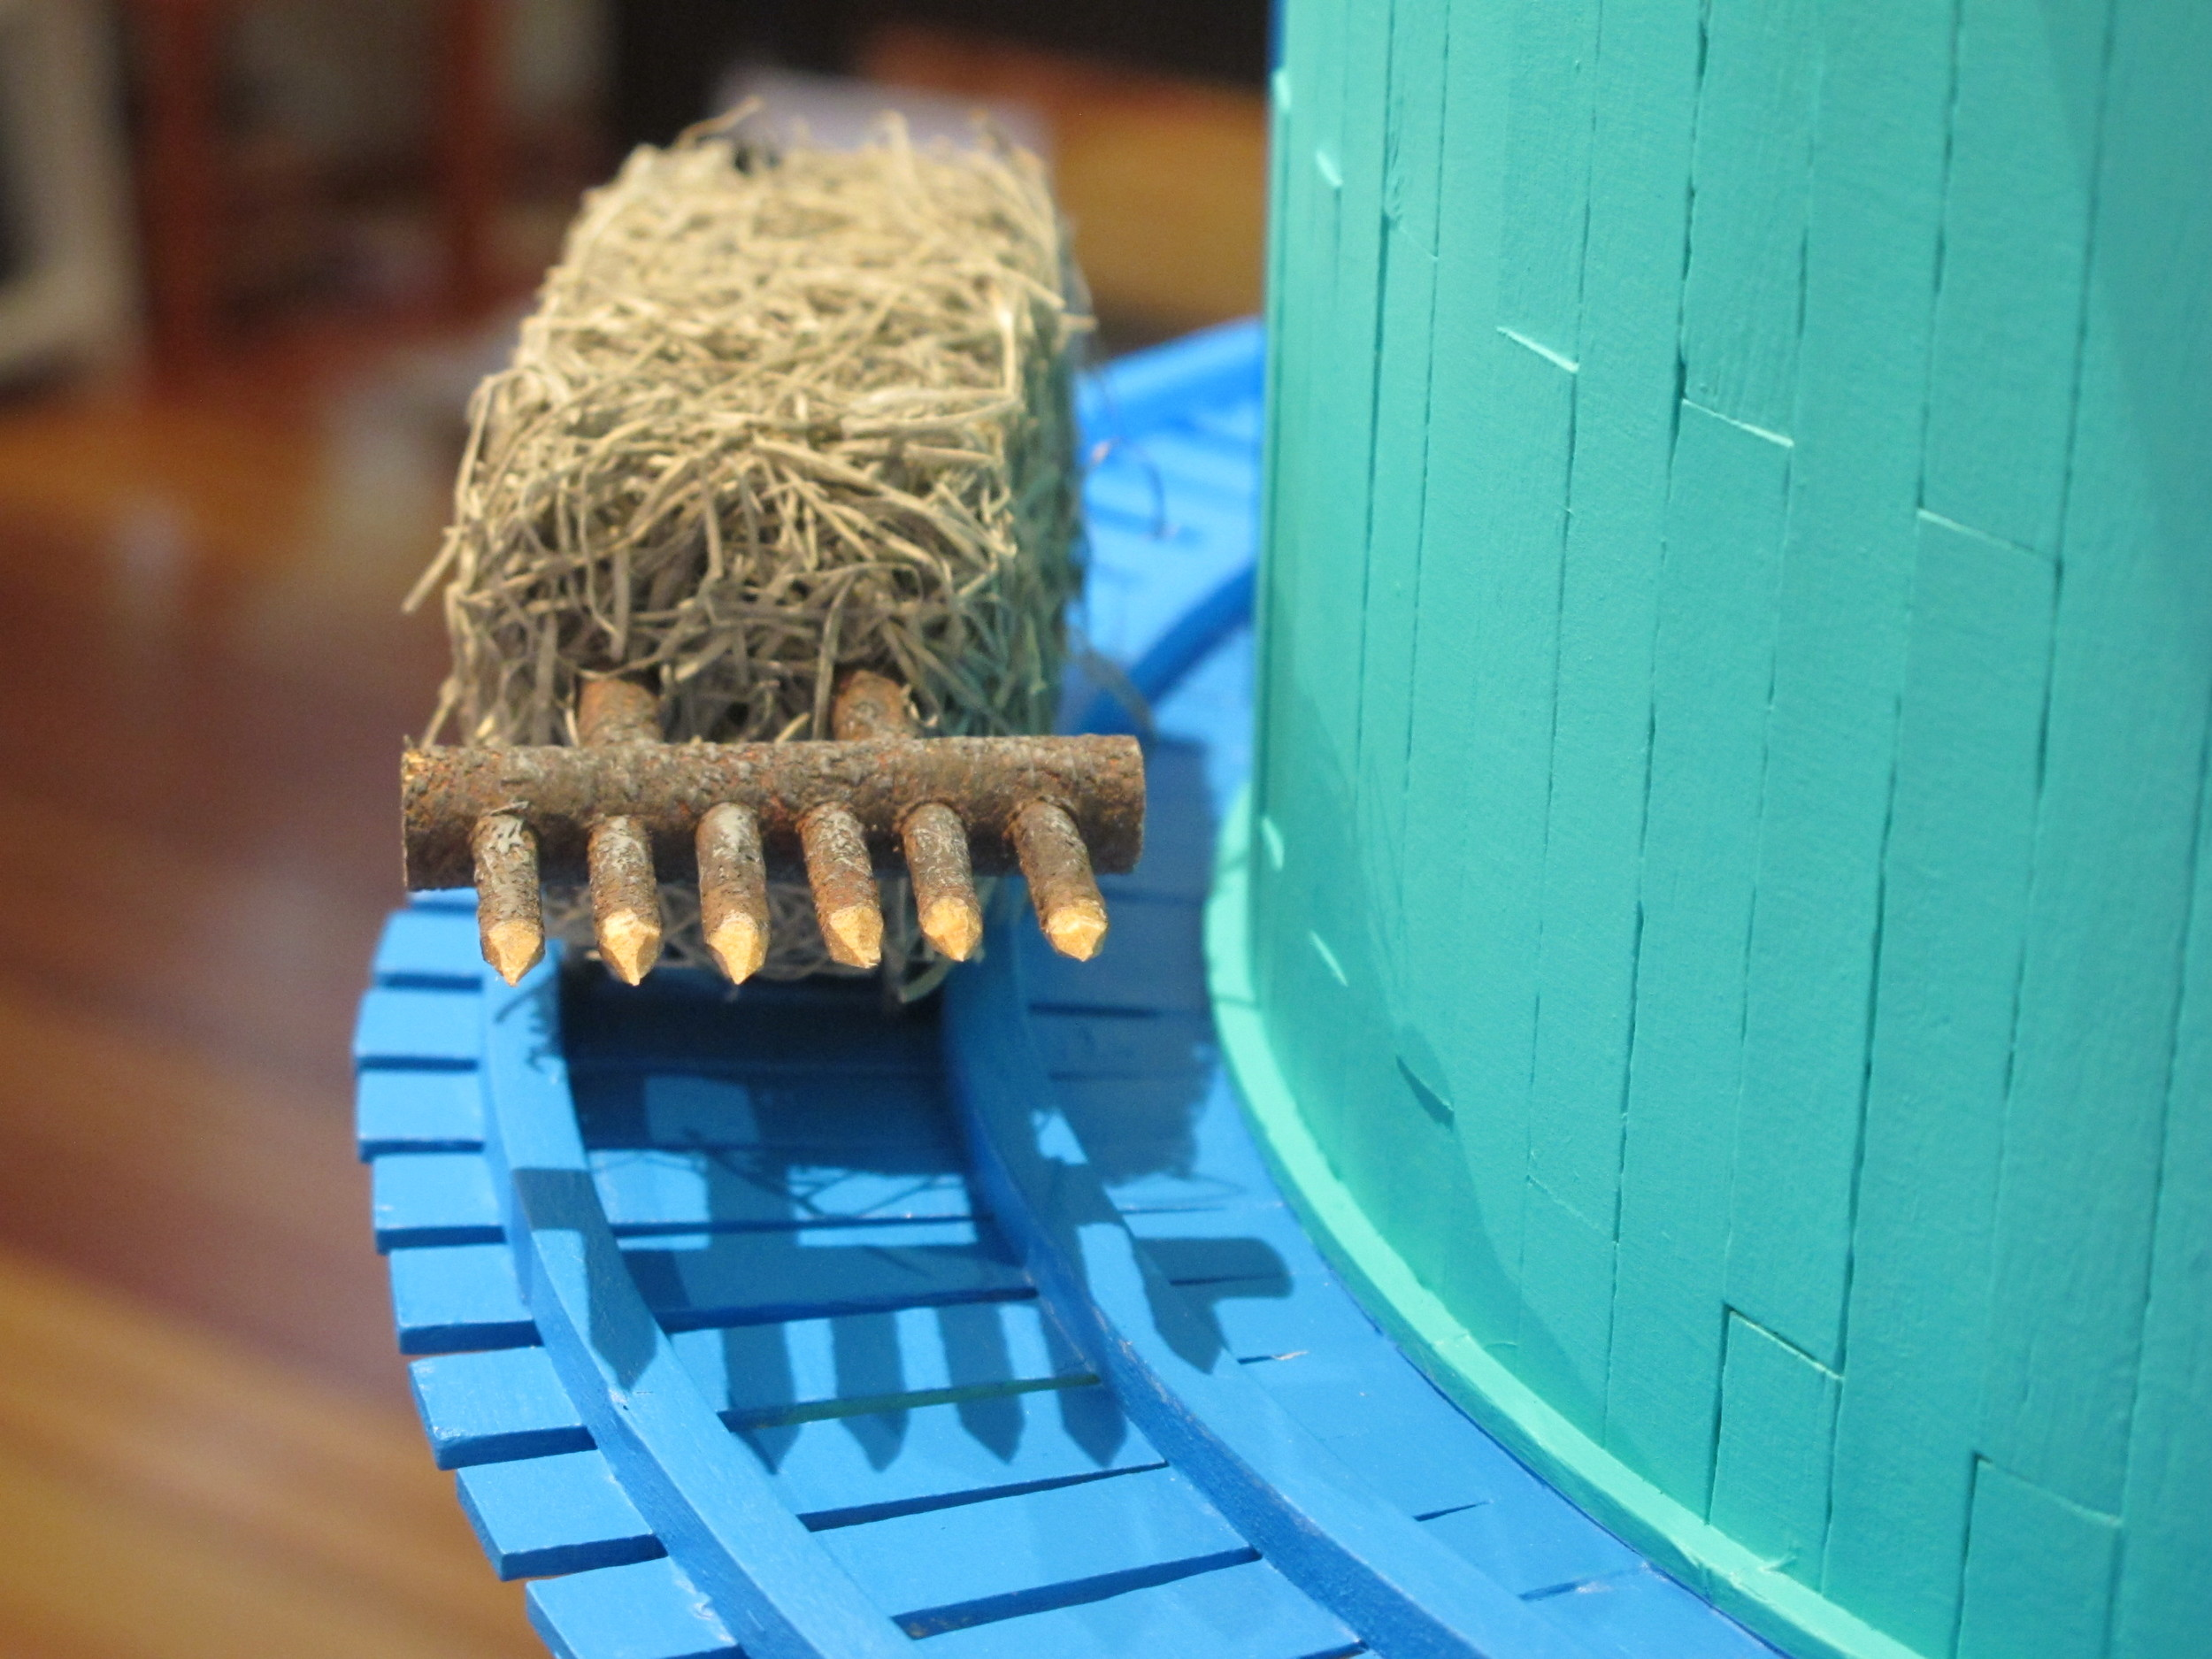 The sinister motorized hay bale, comin' around the bend.